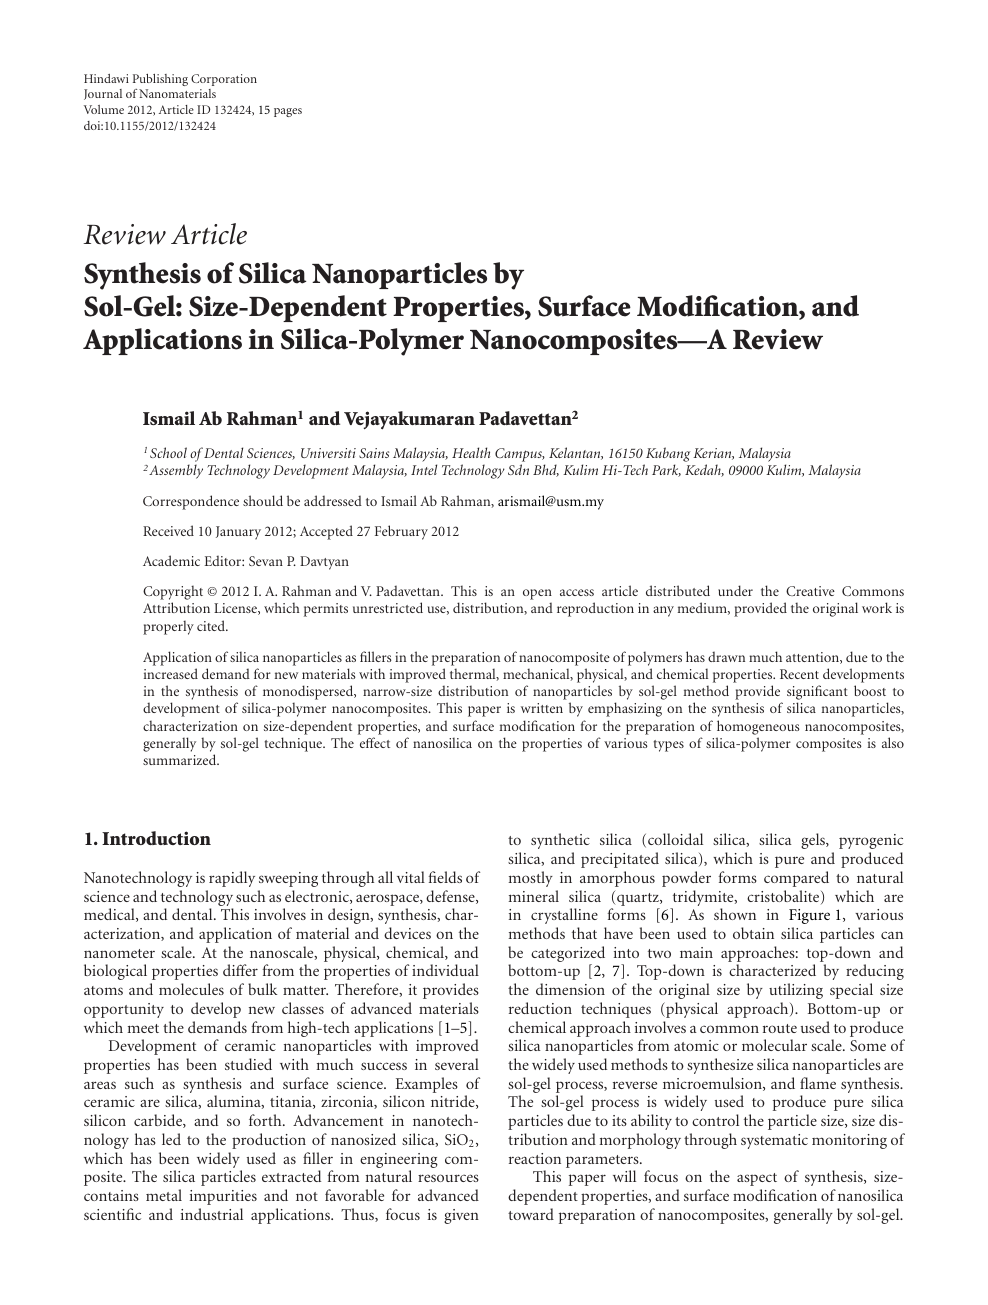 Synthesis of Silica Nanoparticles by Sol-Gel: Size-Dependent